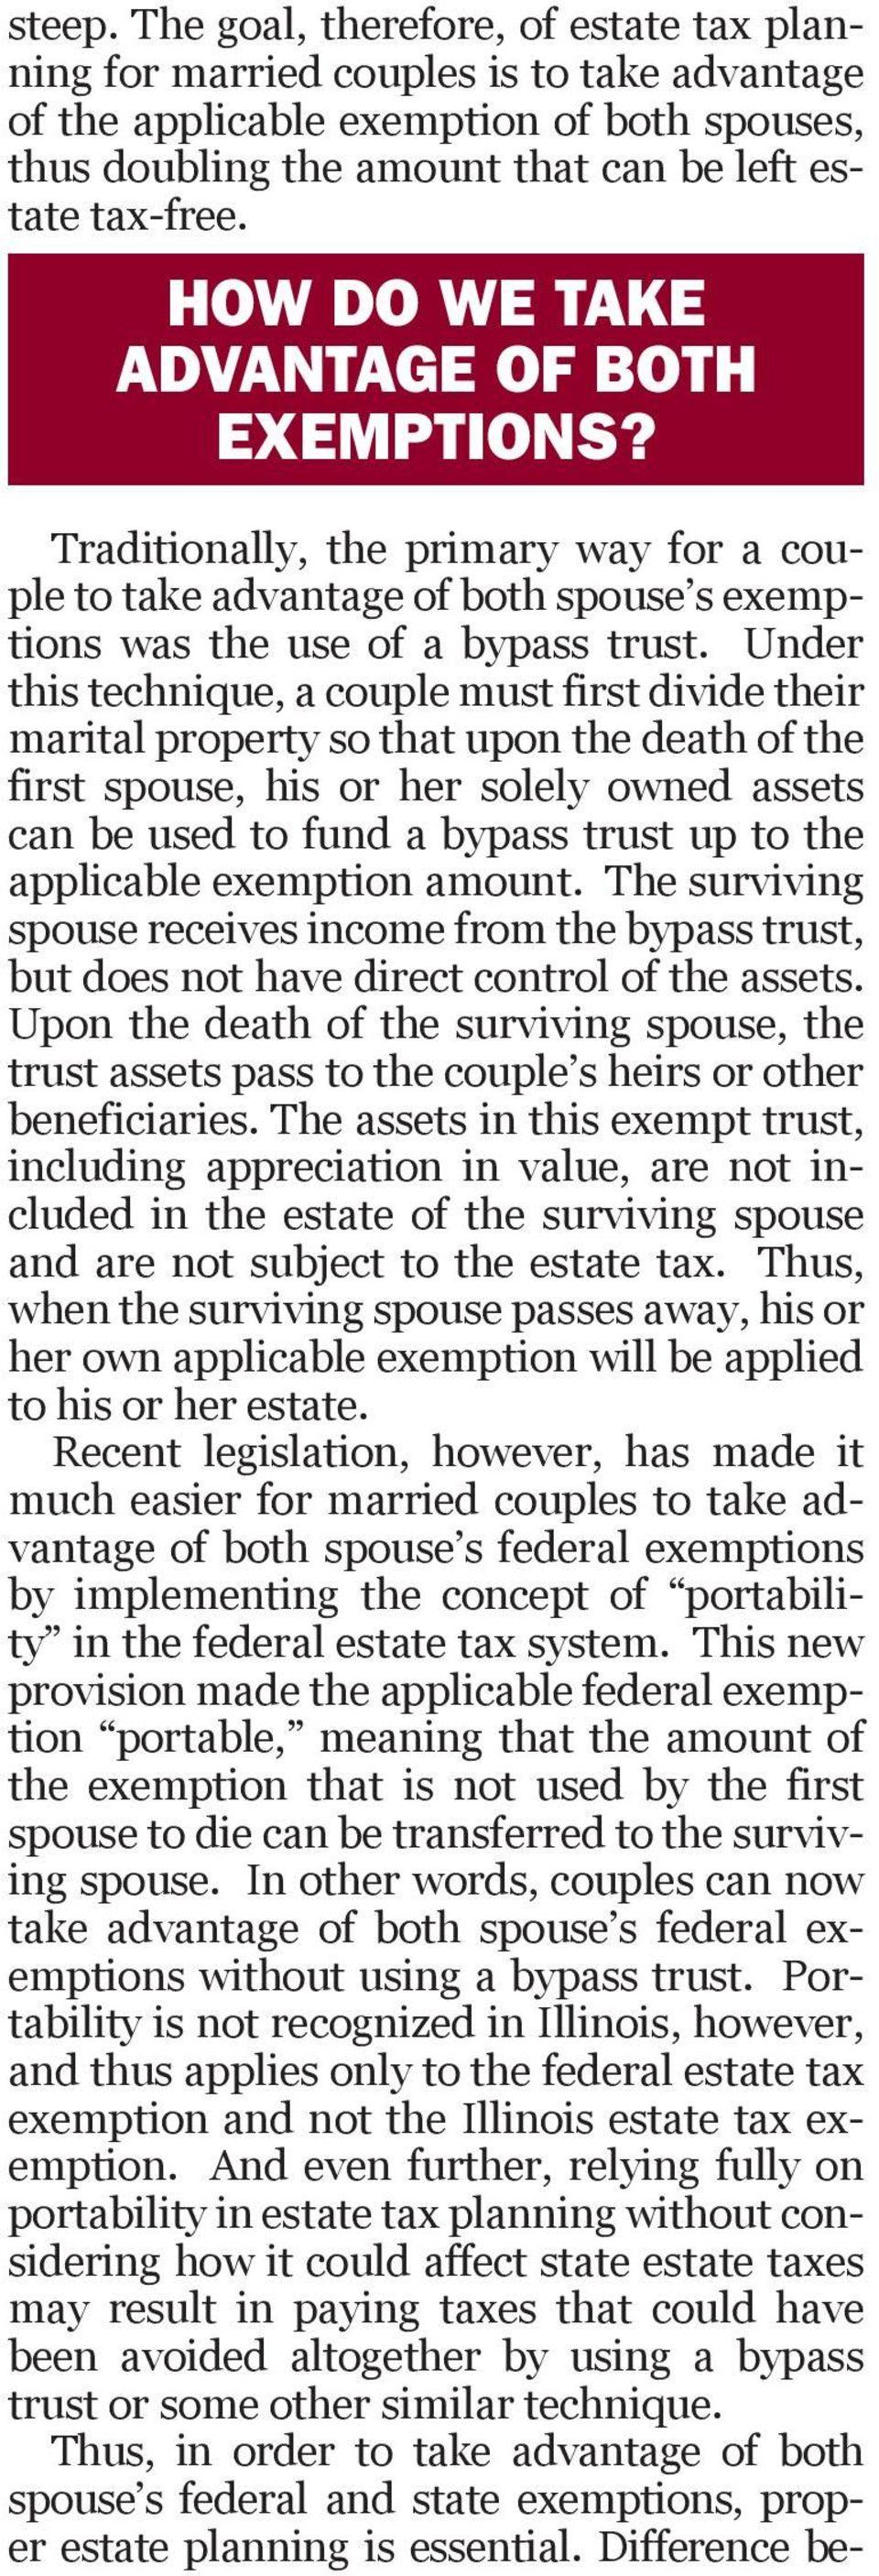 Under this technique, a couple must first divide their marital property so that upon the death of the first spouse, his or her solely owned assets can be used to fund a bypass trust up to the